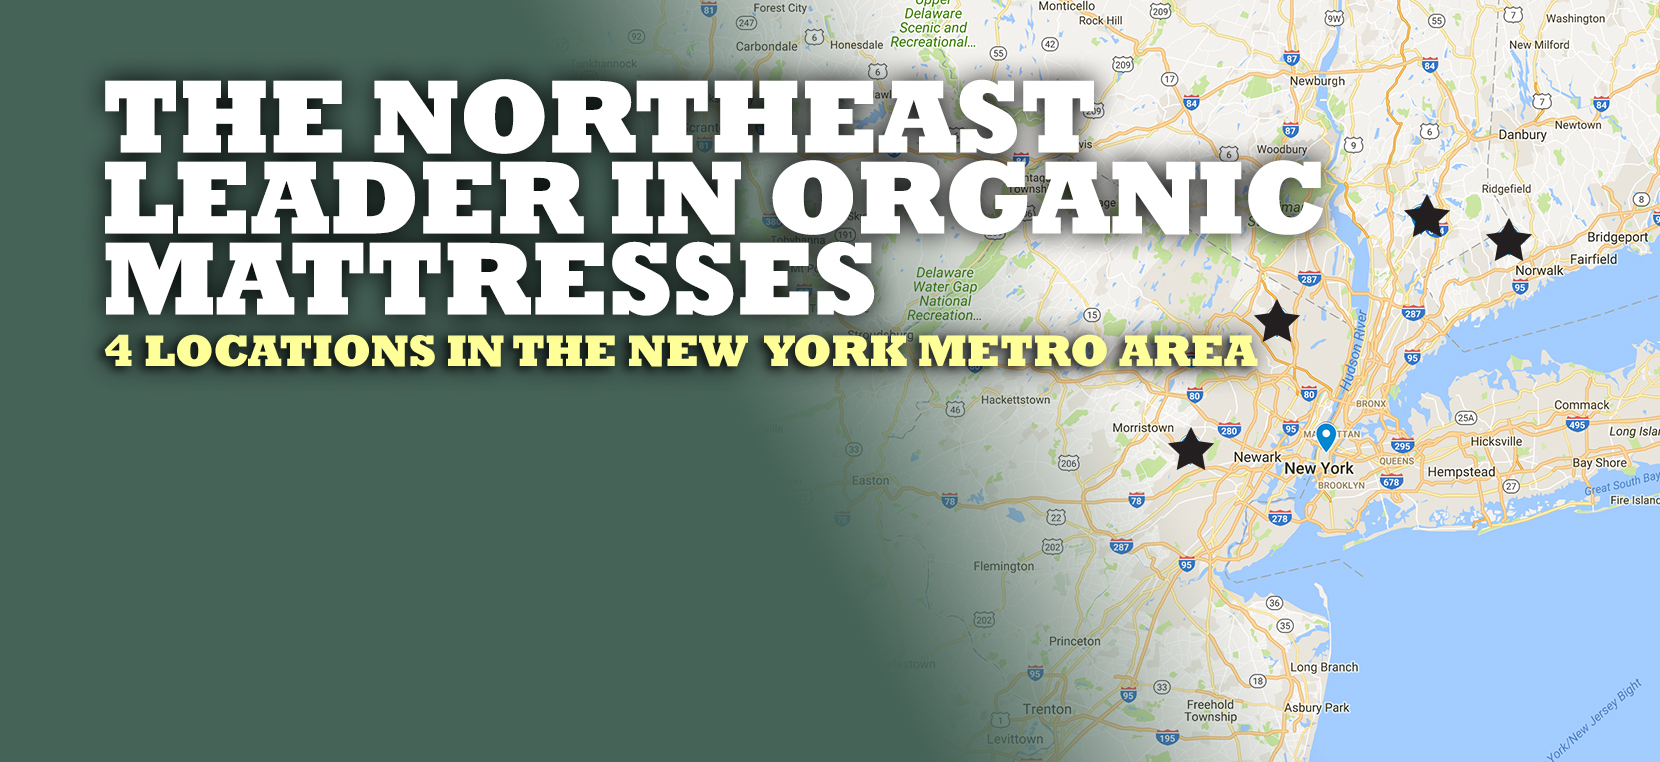 Organic Mattress Store Locations